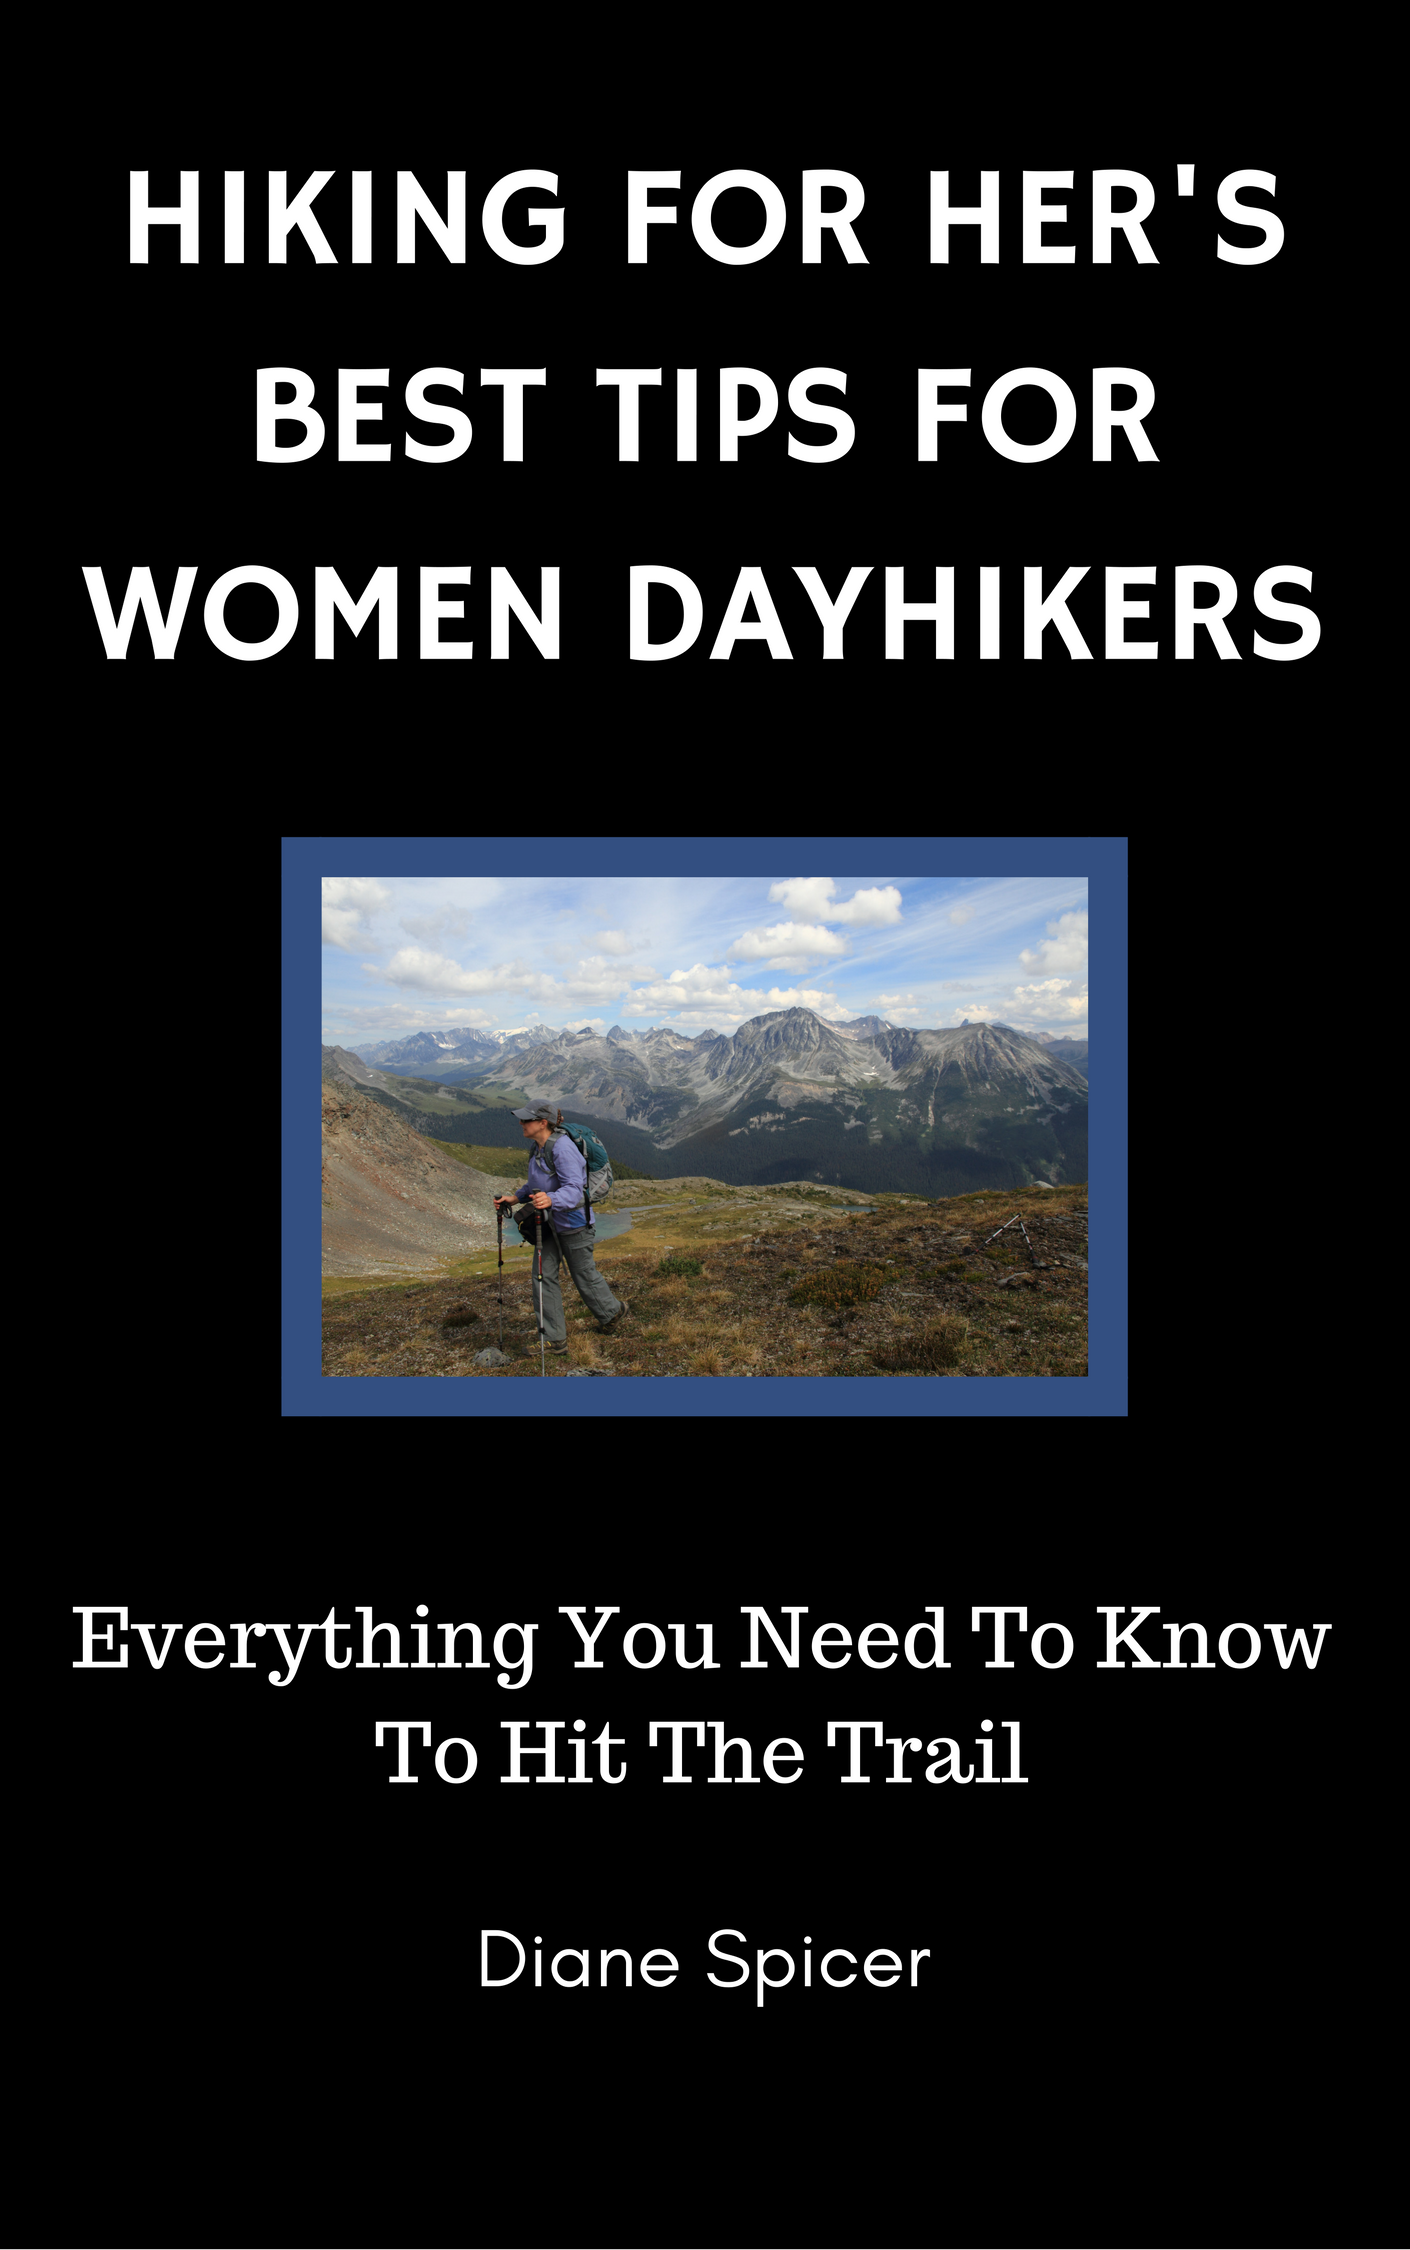 Hiking For Her's Best Tips For Women Dayhikers is now available in paperback! Get all the details here.